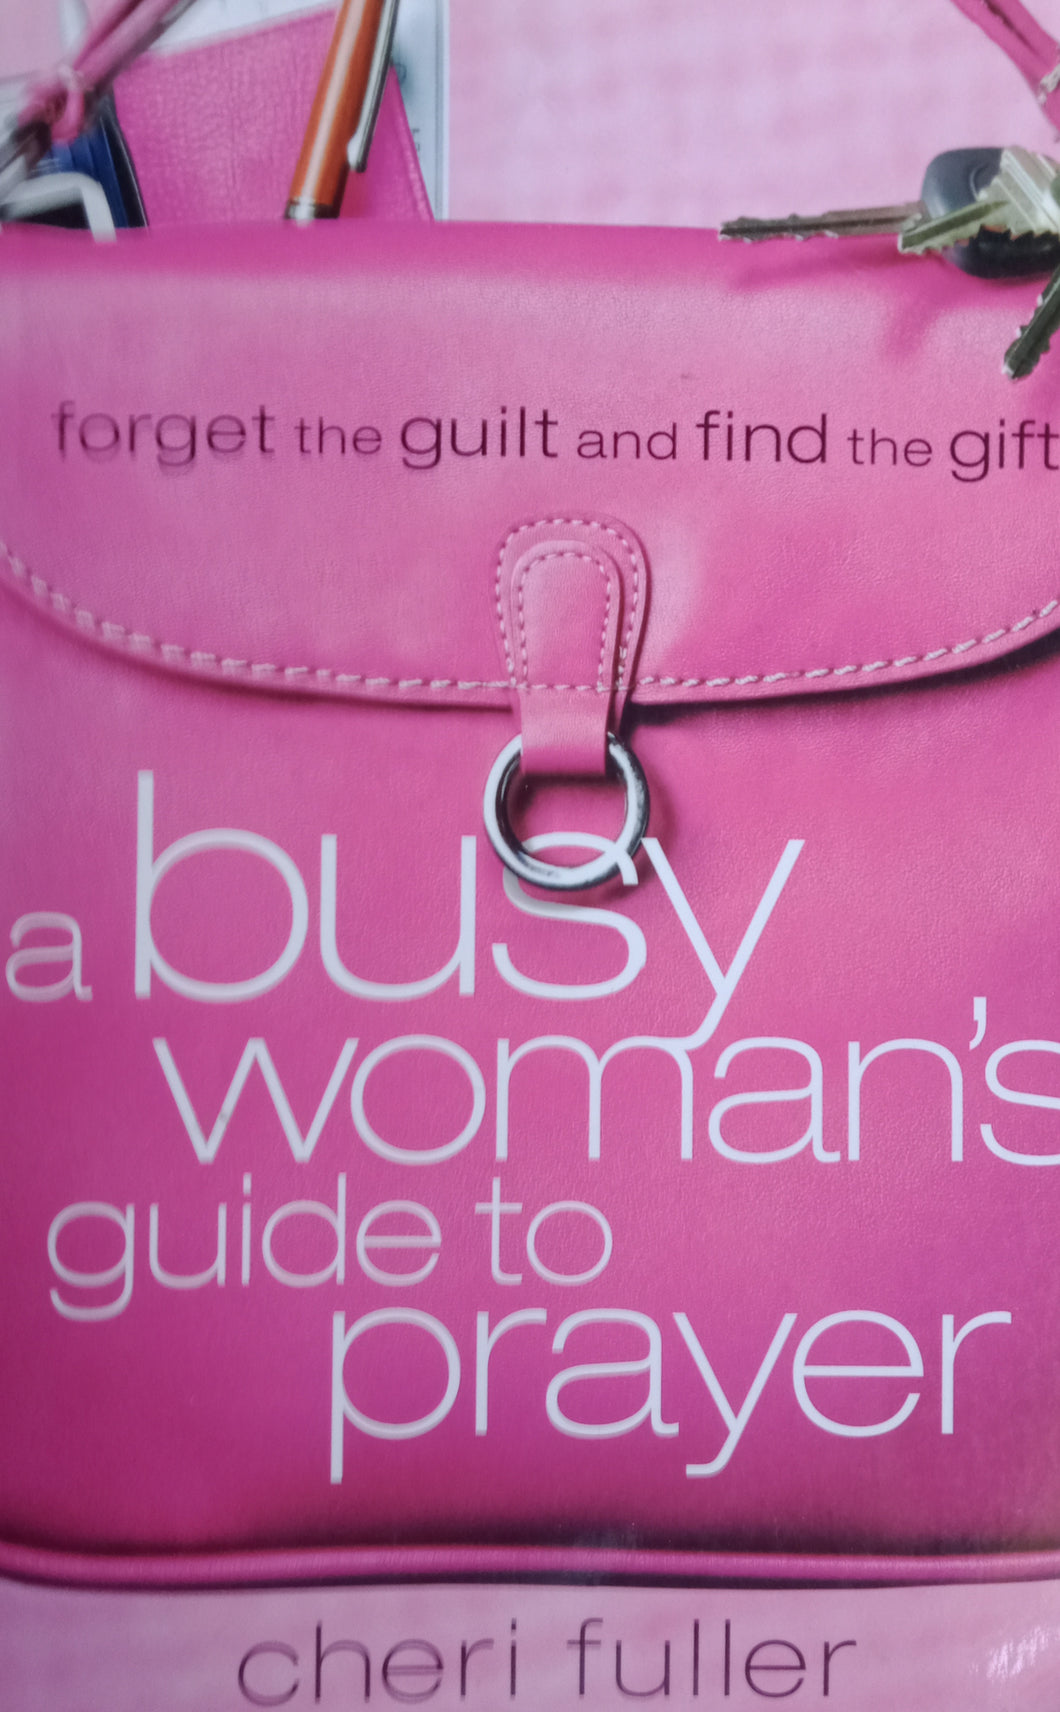 A Busy Woman a Guide To Prayer by Cheri Fuller